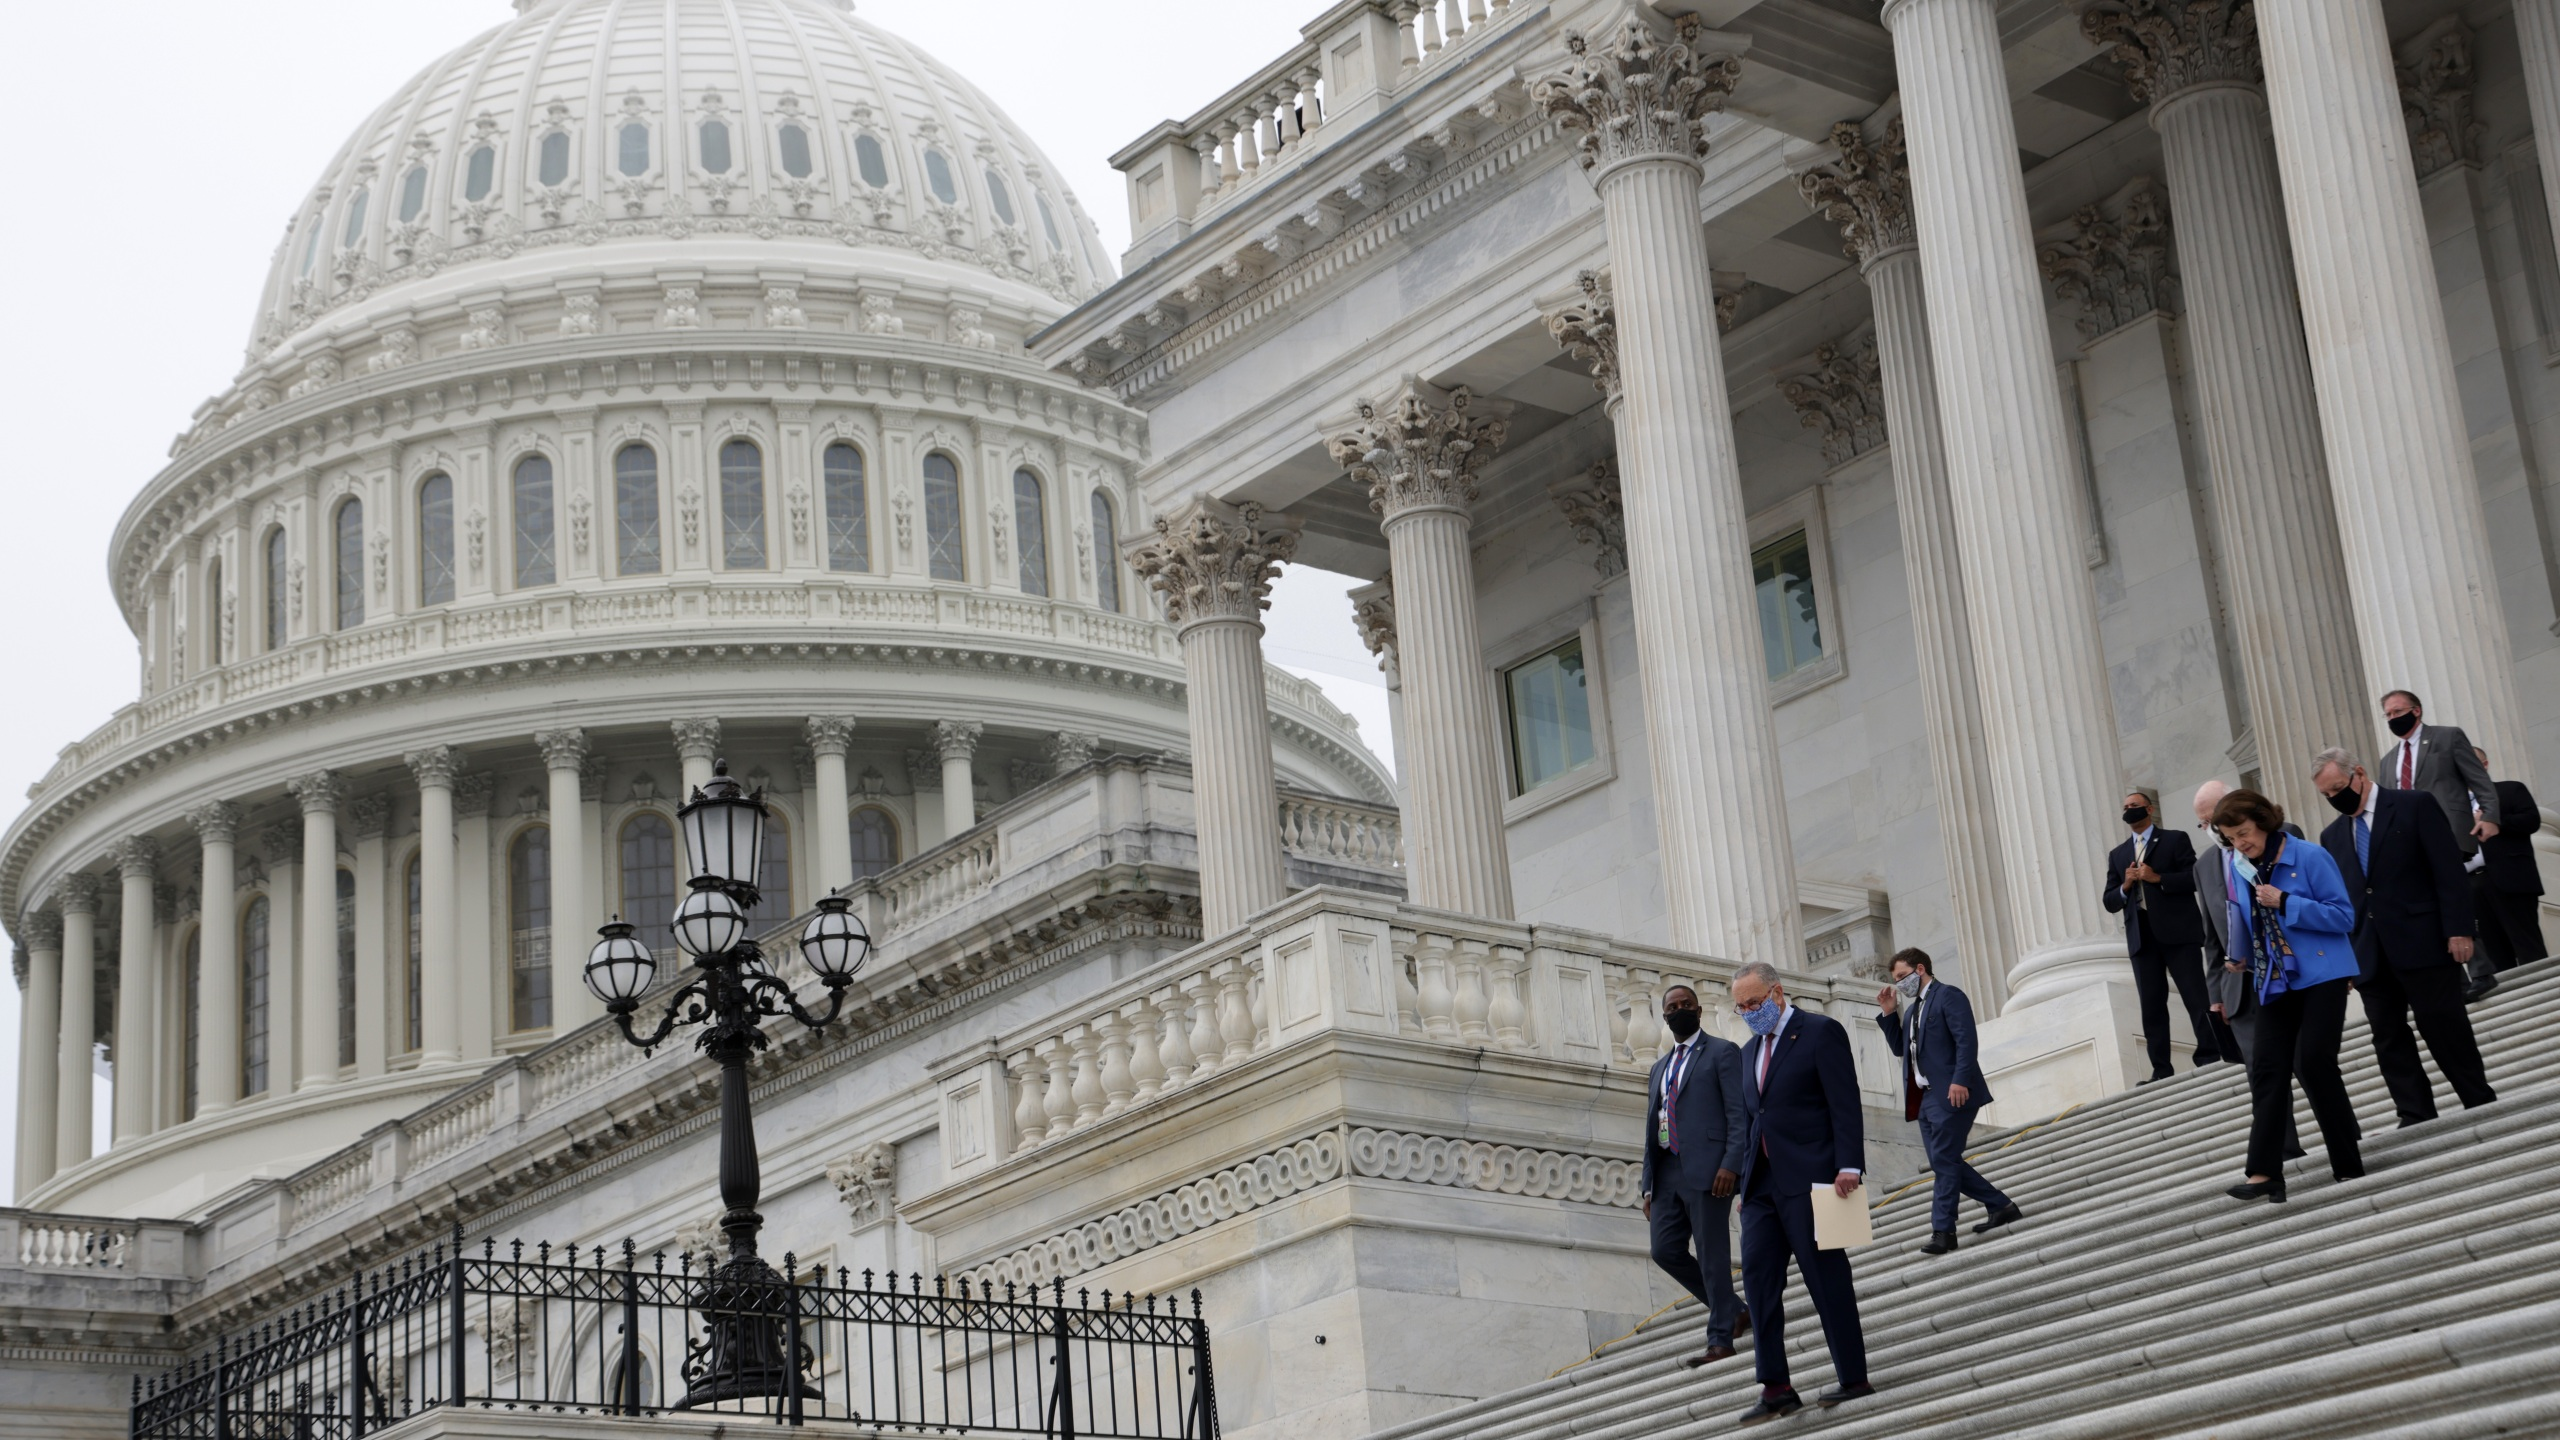 Democratic members of U.S. Senate Judiciary Committee walk down the east front steps of the U.S. Capitol for a news conference on Oct. 22, 2020 in Washington, DC. (Alex Wong/Getty Images)